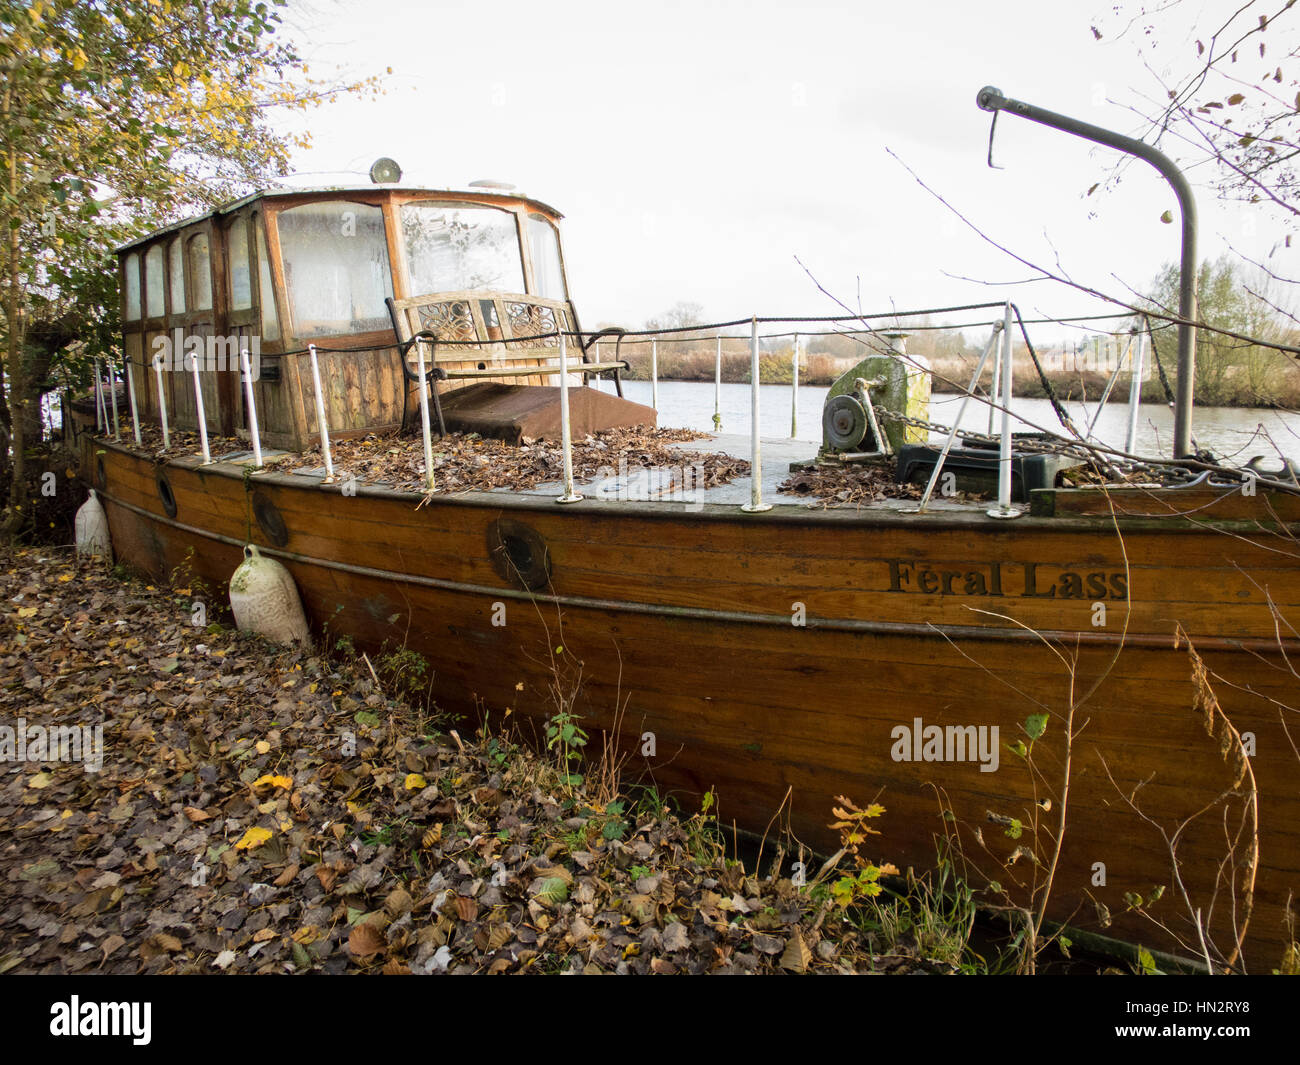 Old Boat Feral Lass Stock Photo